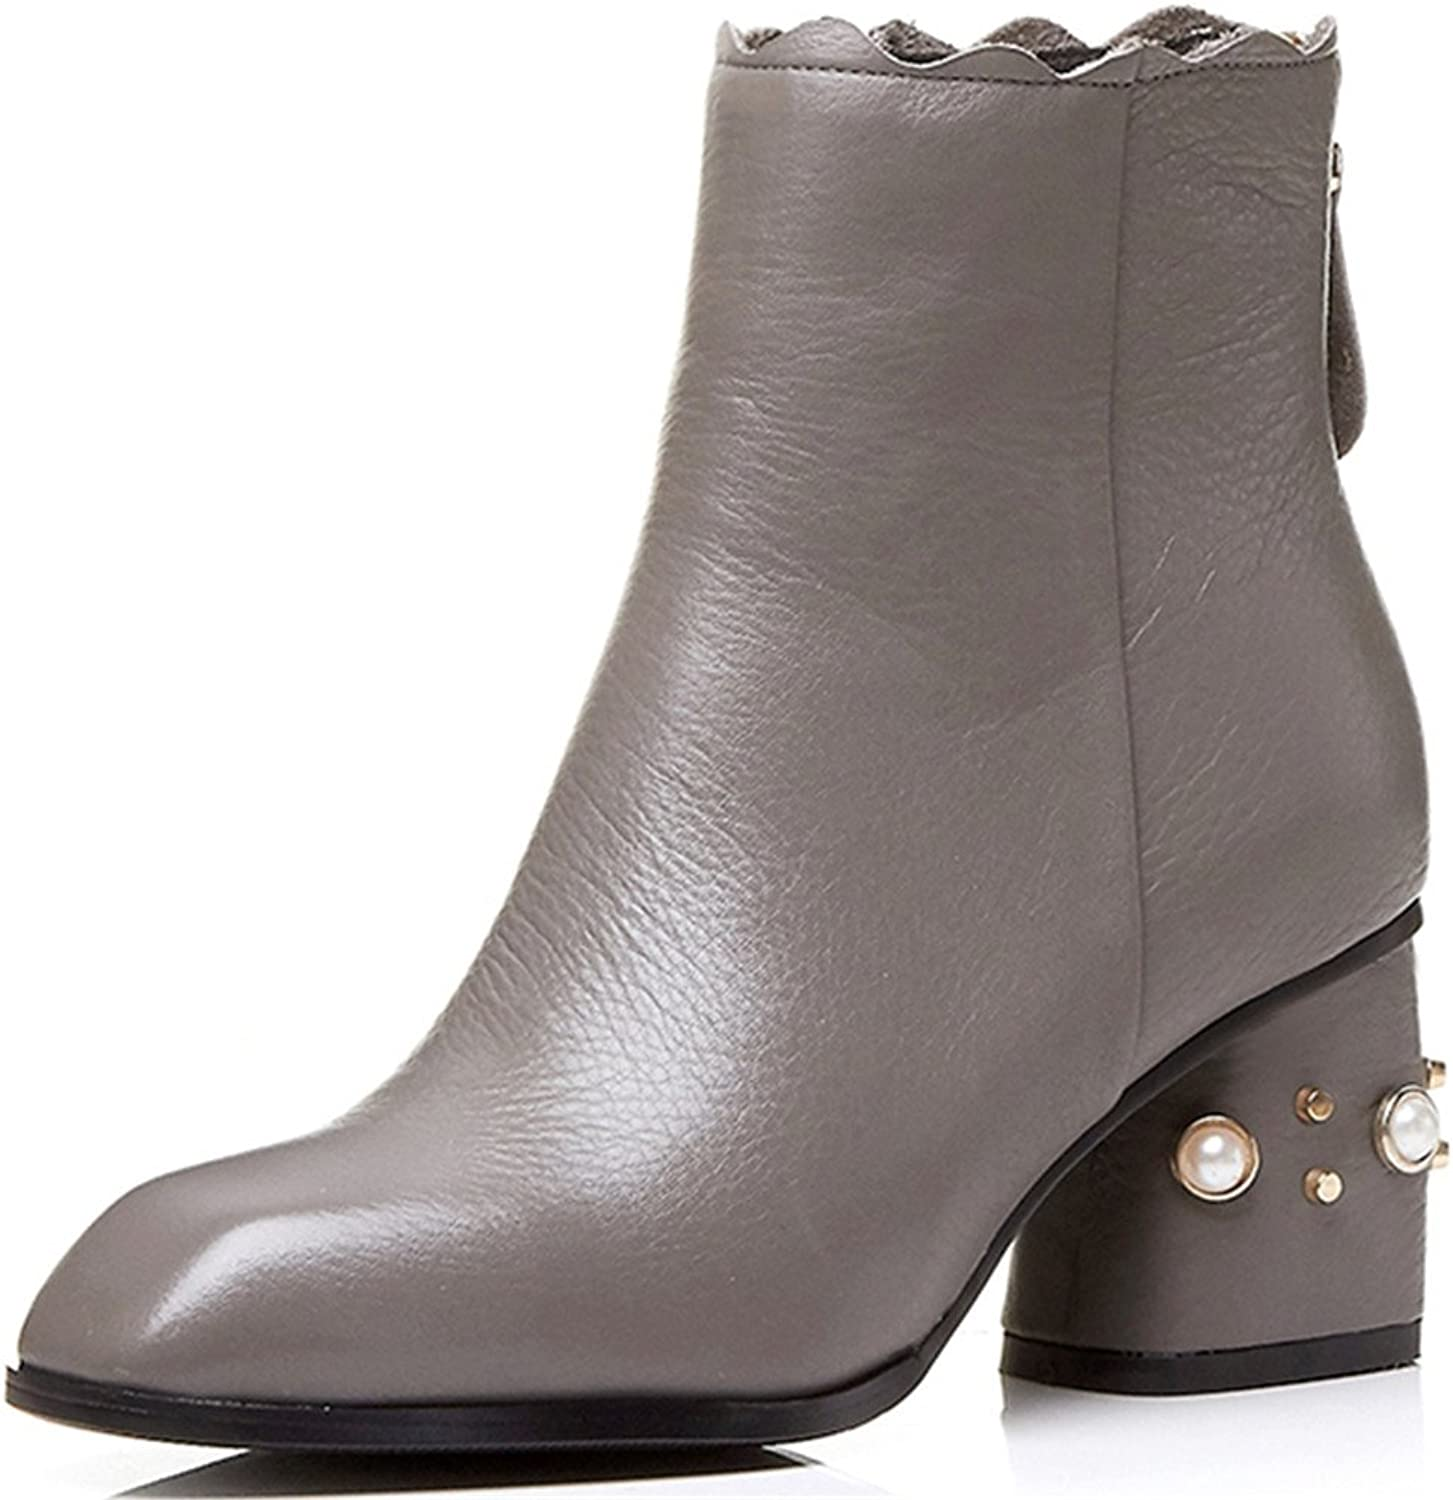 Nine Seven Genuine Leather Women's Square Toe Block Heel Zip Up Handmade Pearls Ankle Boots shoes New